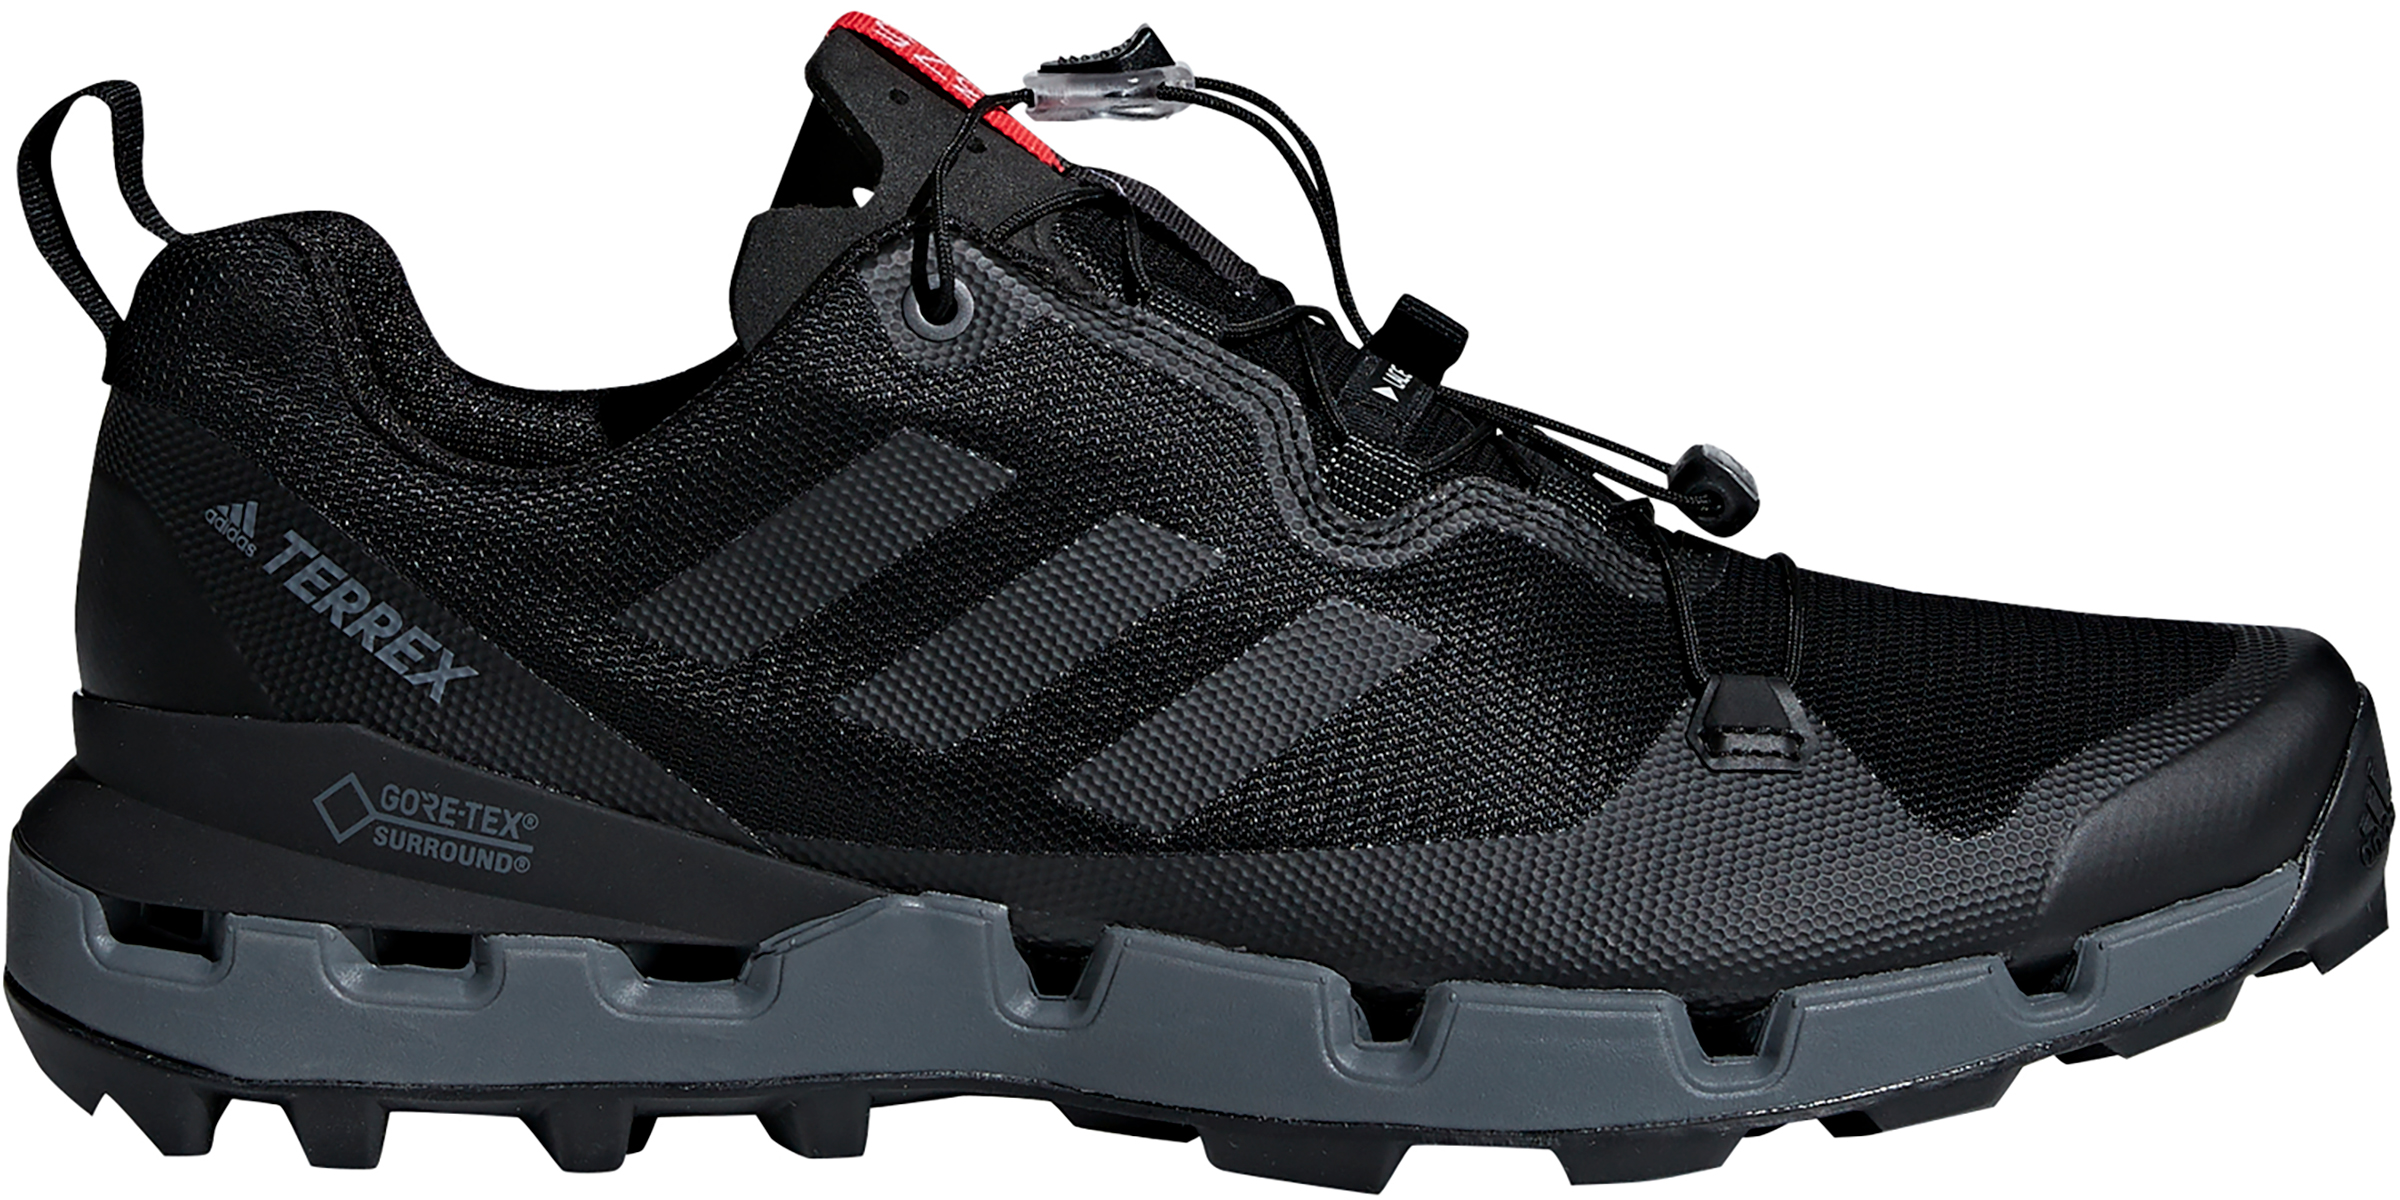 Chaussures | adidas | Terrex Fast GTX Surround Shoes